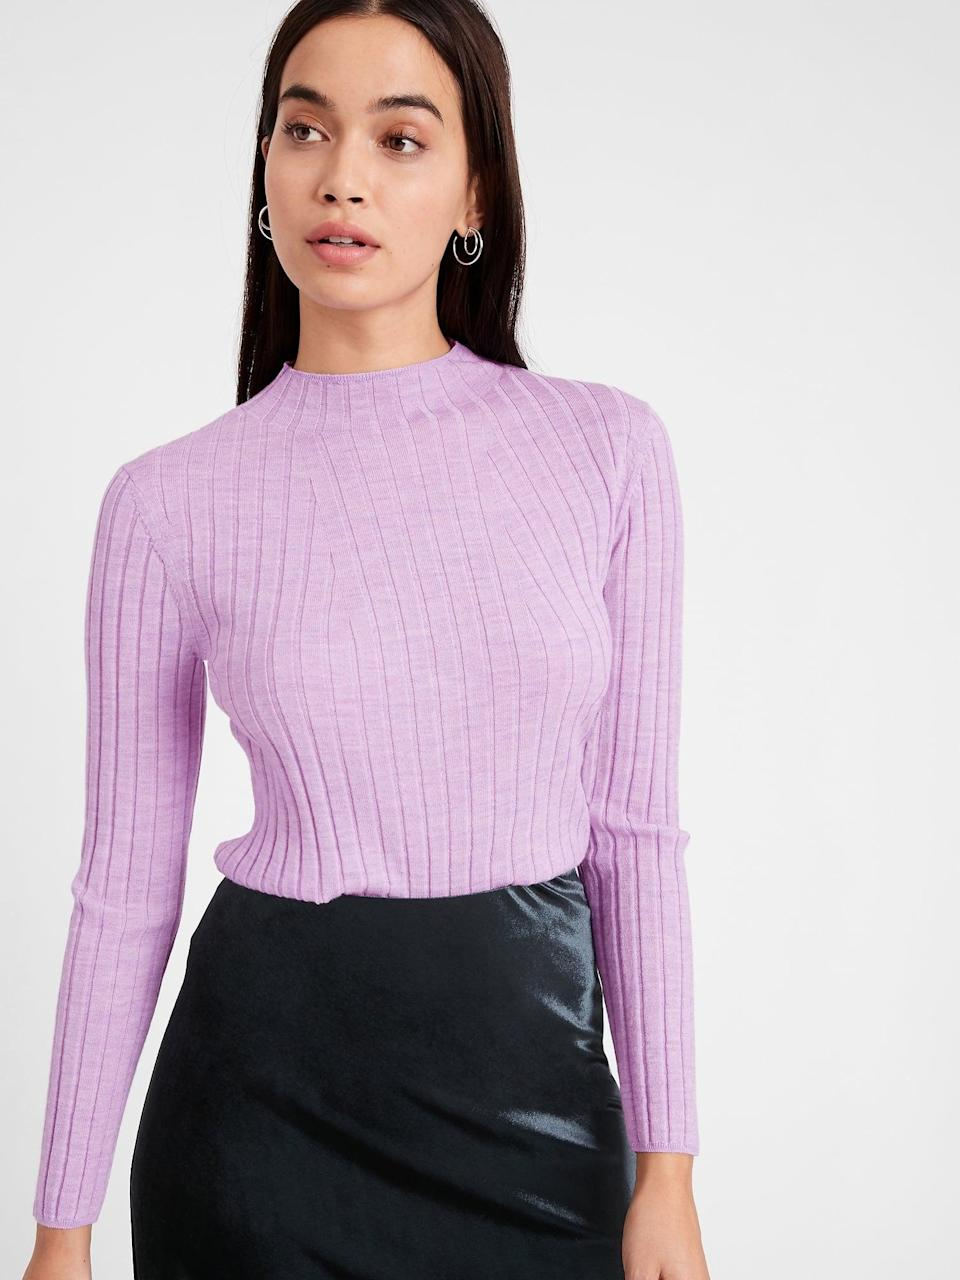 <p>This <span>Banana Republic Merino Ribbed Sweater in Responsible Wool</span> ($23, originally $80) comes in so many colors like this really beautiful lilac! You'll be hard-pressed to find a better deal for a responsibly sourced sweater than this sale price.</p>